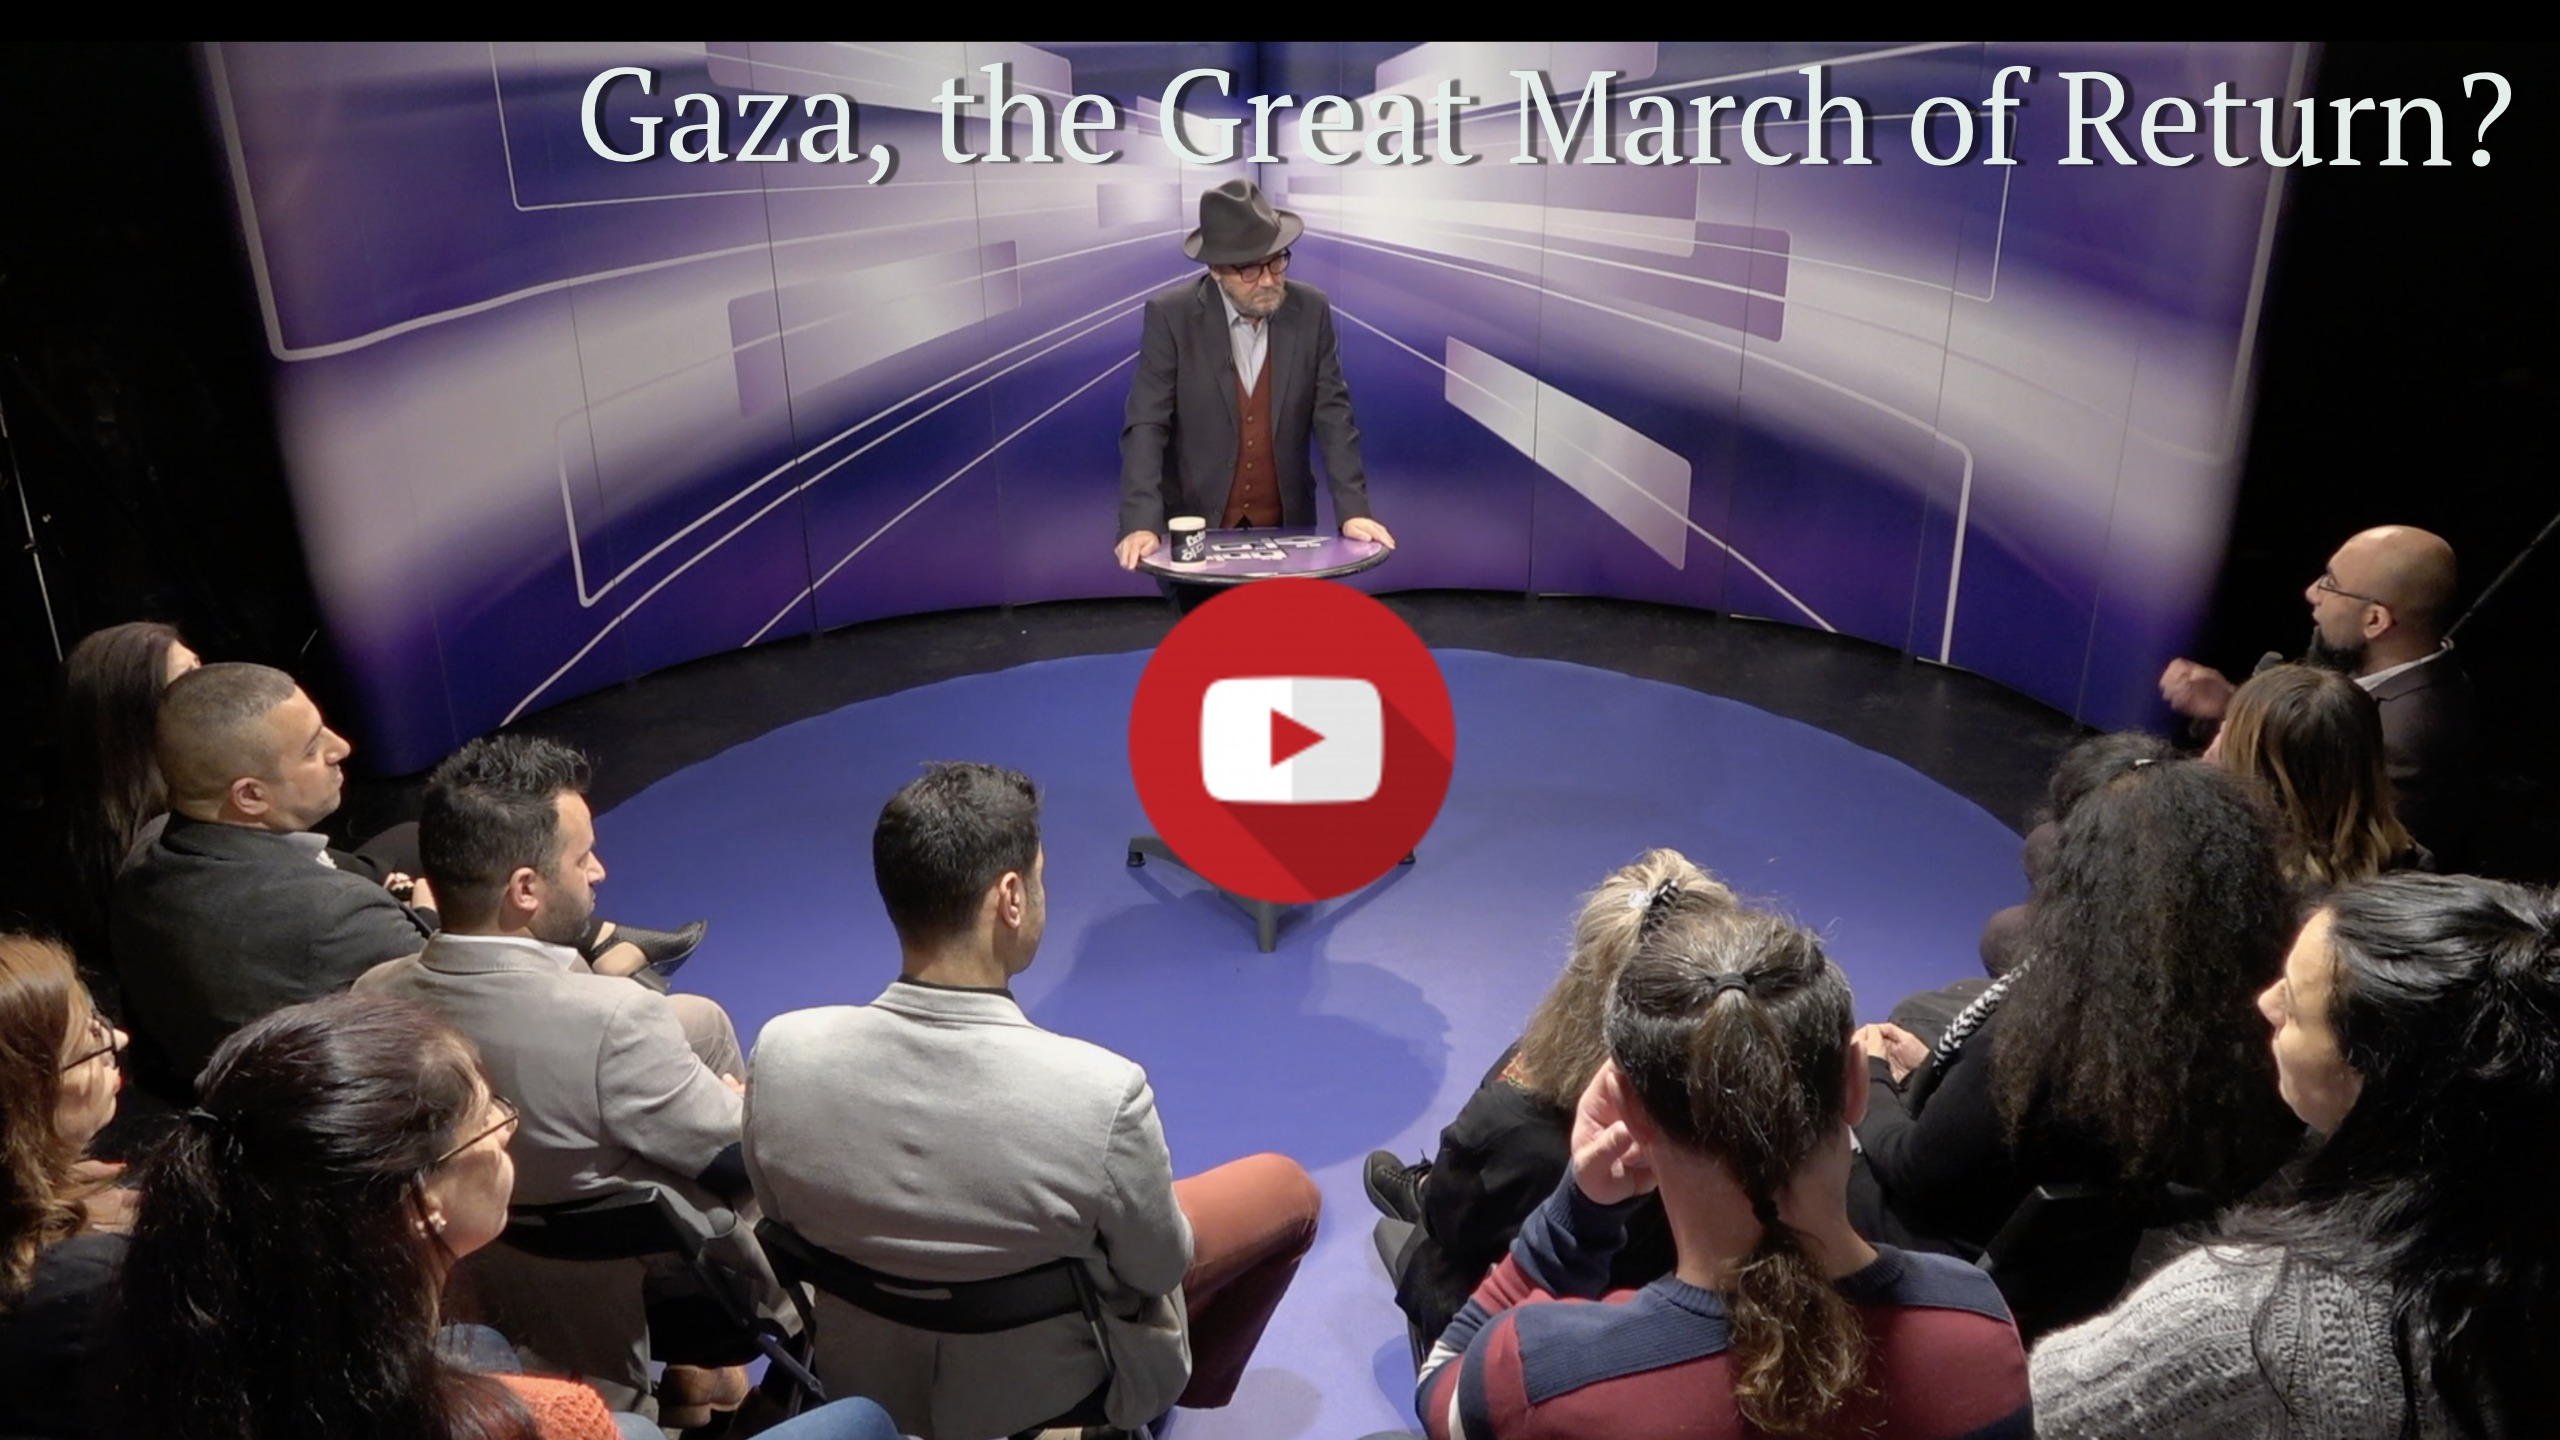 Gaza March of Return for Kalima Horra YouTube page